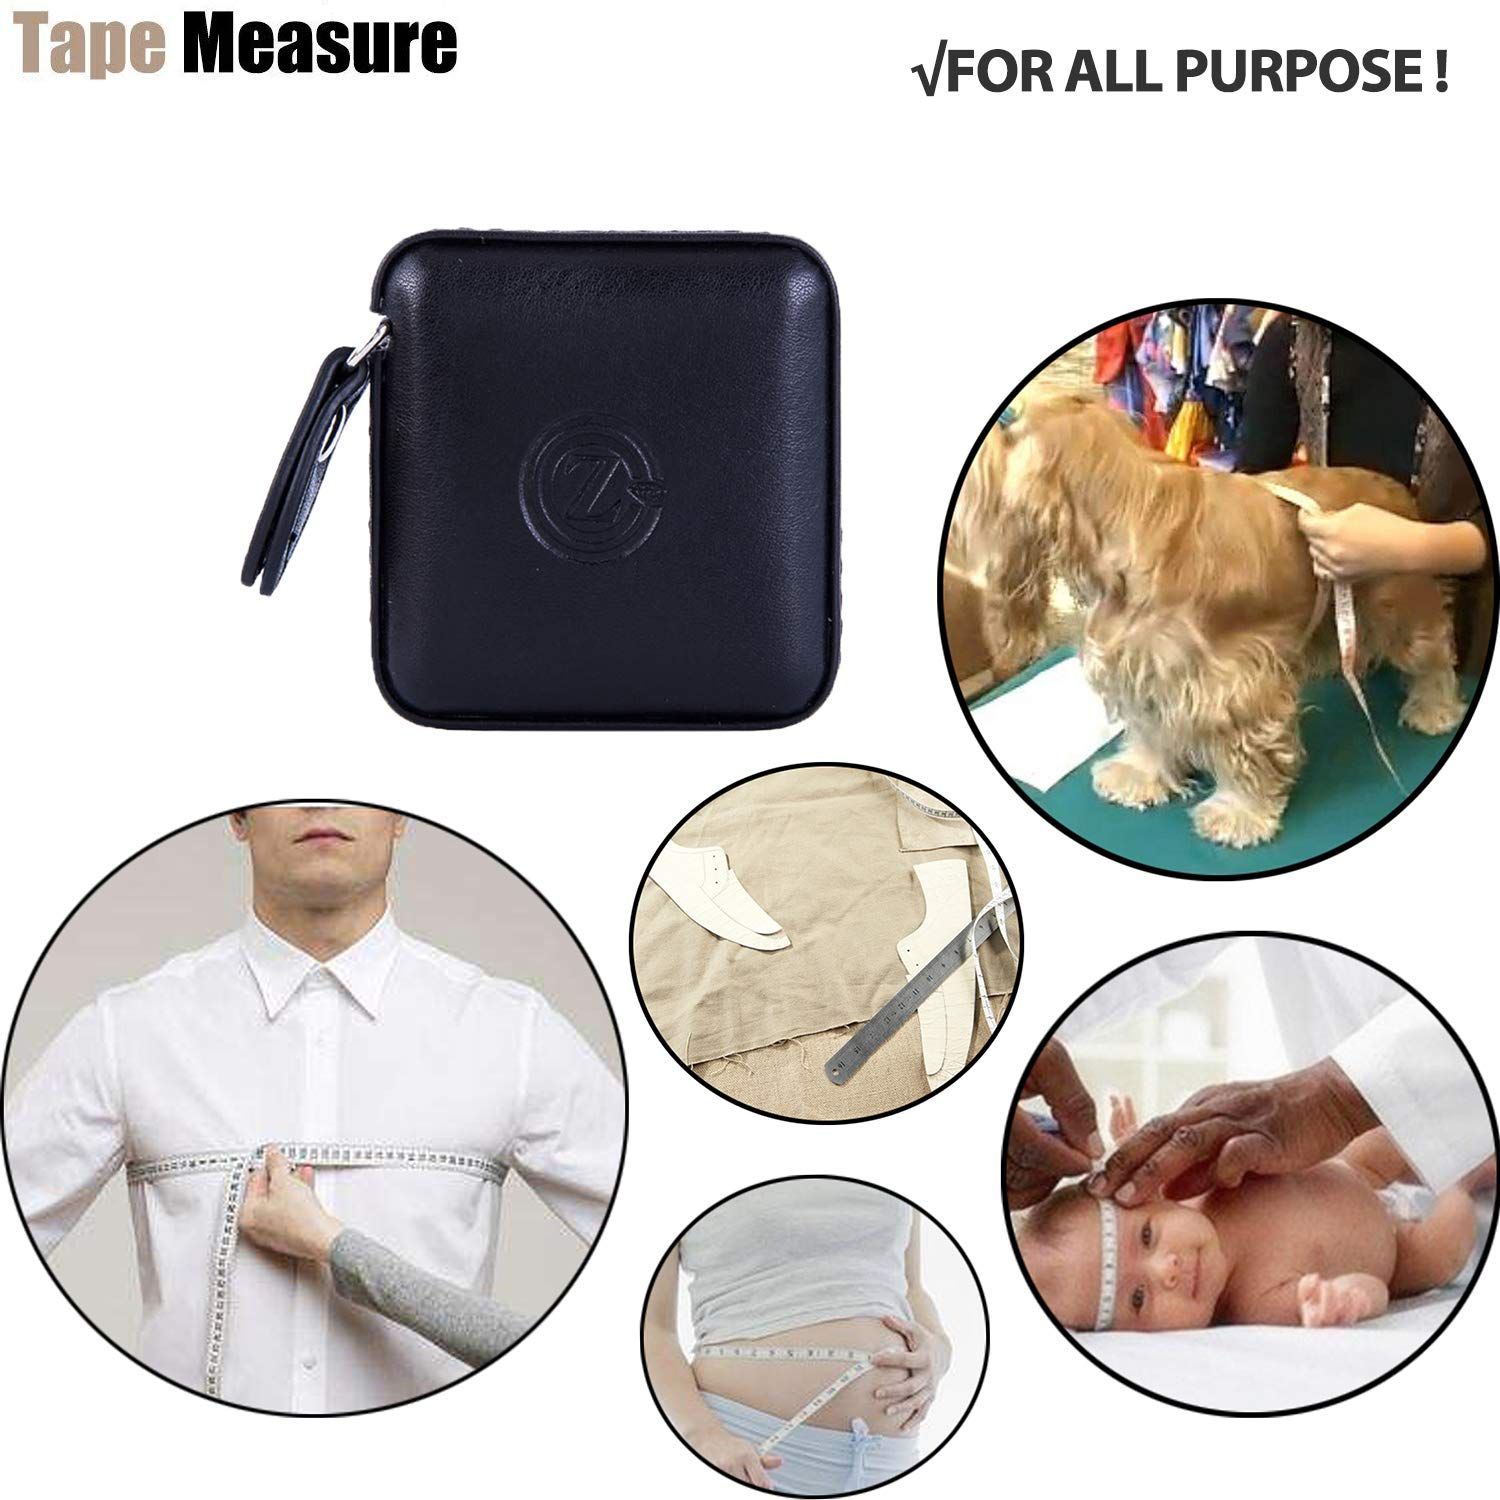 Medical Body Cloth Tailor Craft Dieting Measuring Tape 60 Inch//1.5M Dual Sided Retractable Ruler with Push Button Square 1 Pack, Blue Sewing Tape Measure